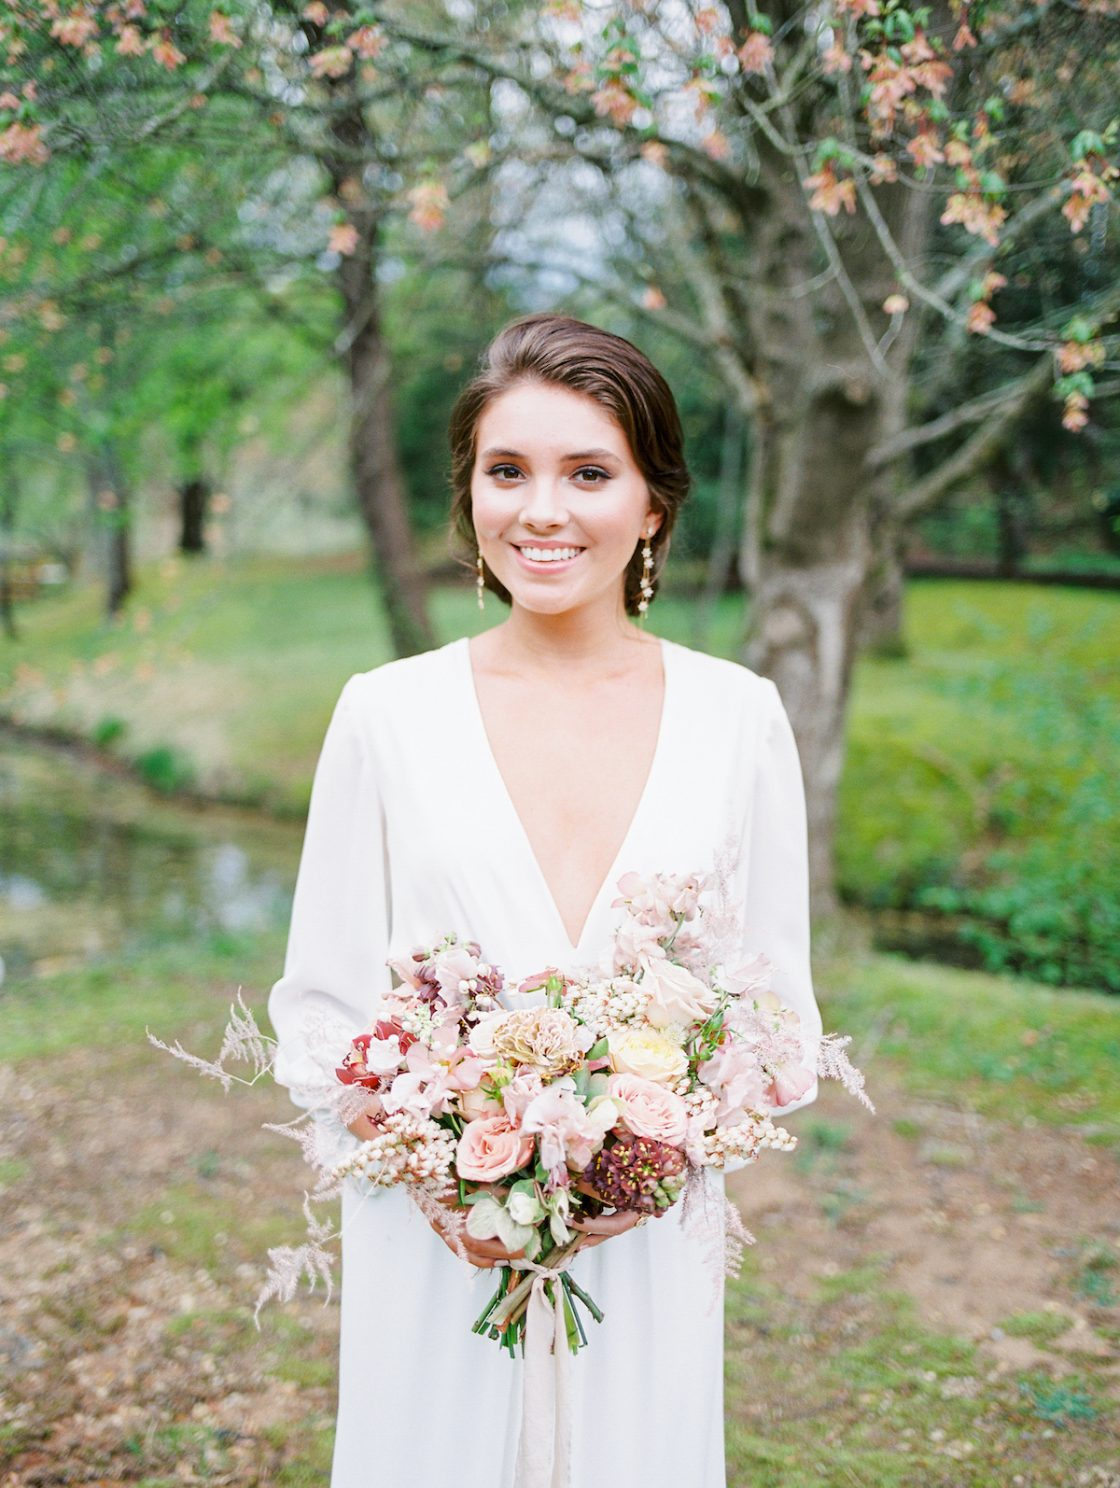 Blush and Natural Wedding Bouquet